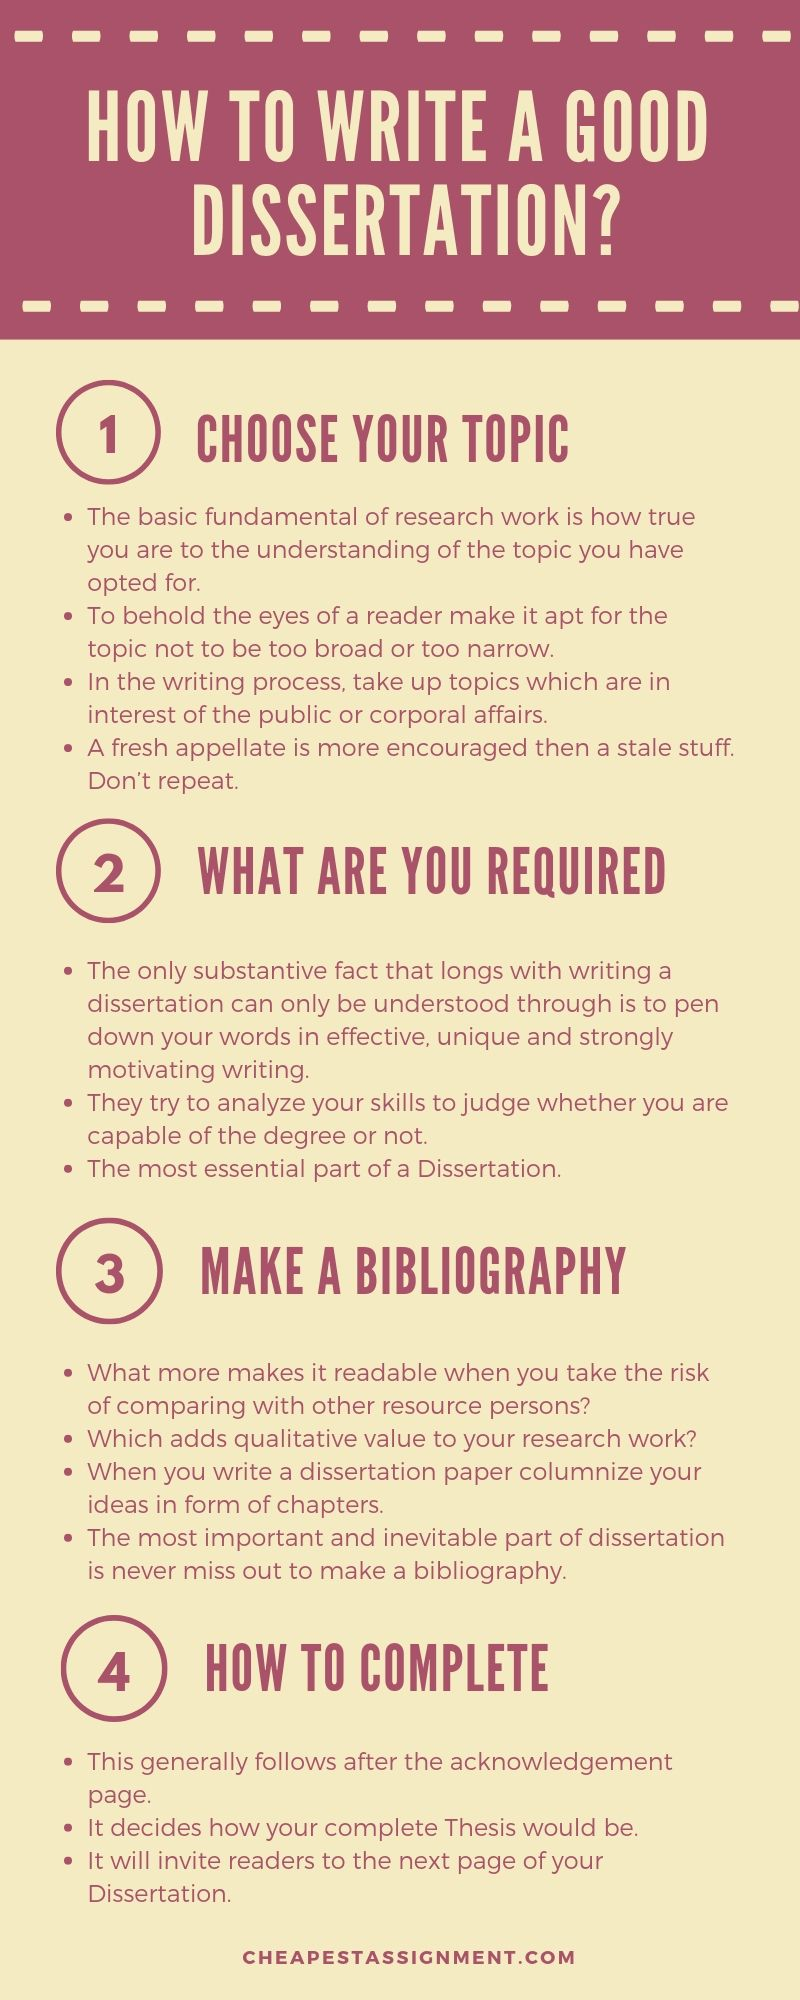 How to Write a First Class Dissertation?